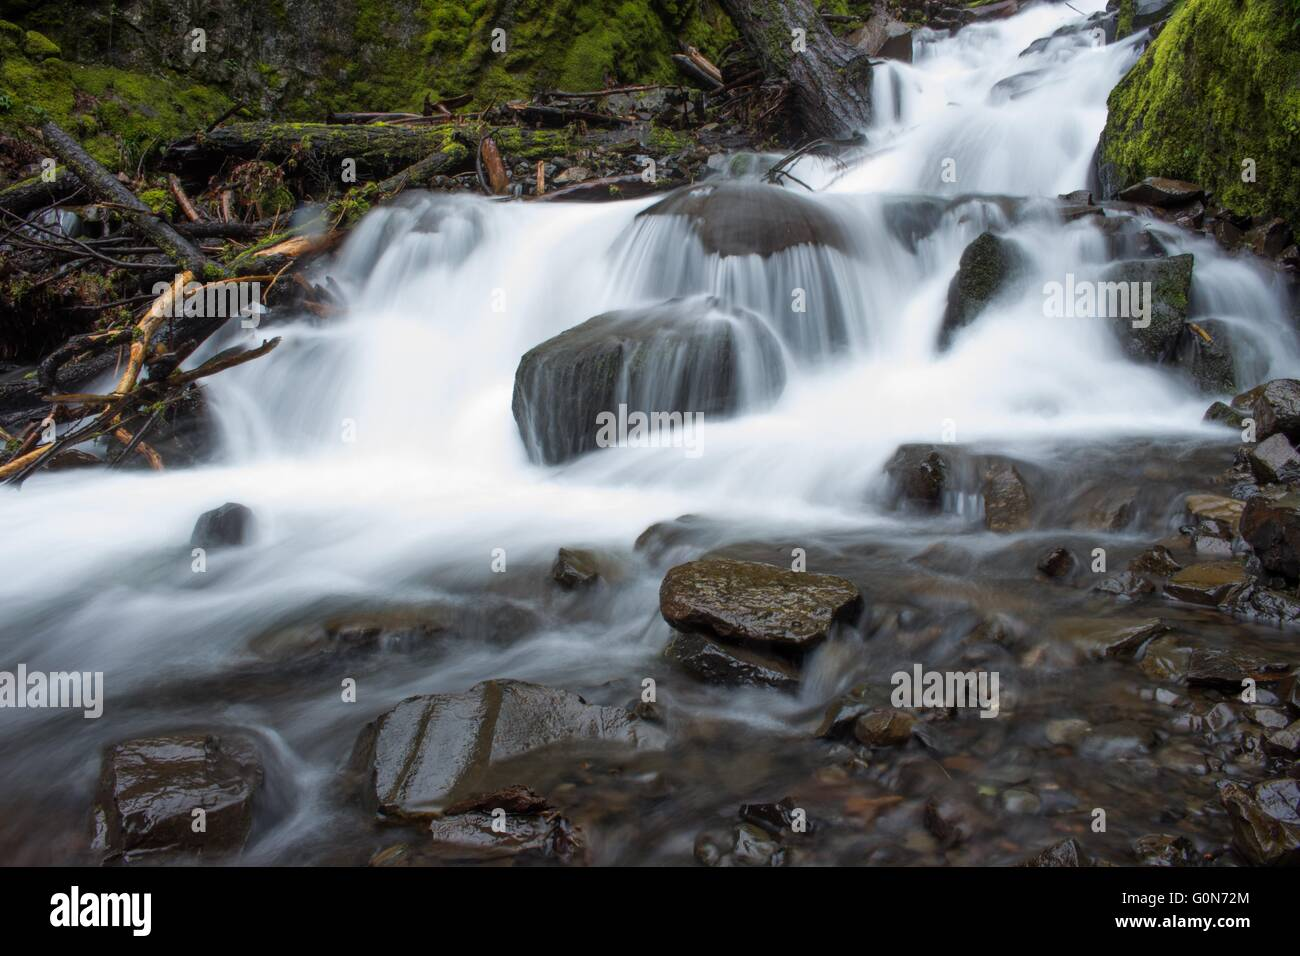 Starvation Creek, Columbia River Gorge National Scenic Area, Oregon - Stock Image